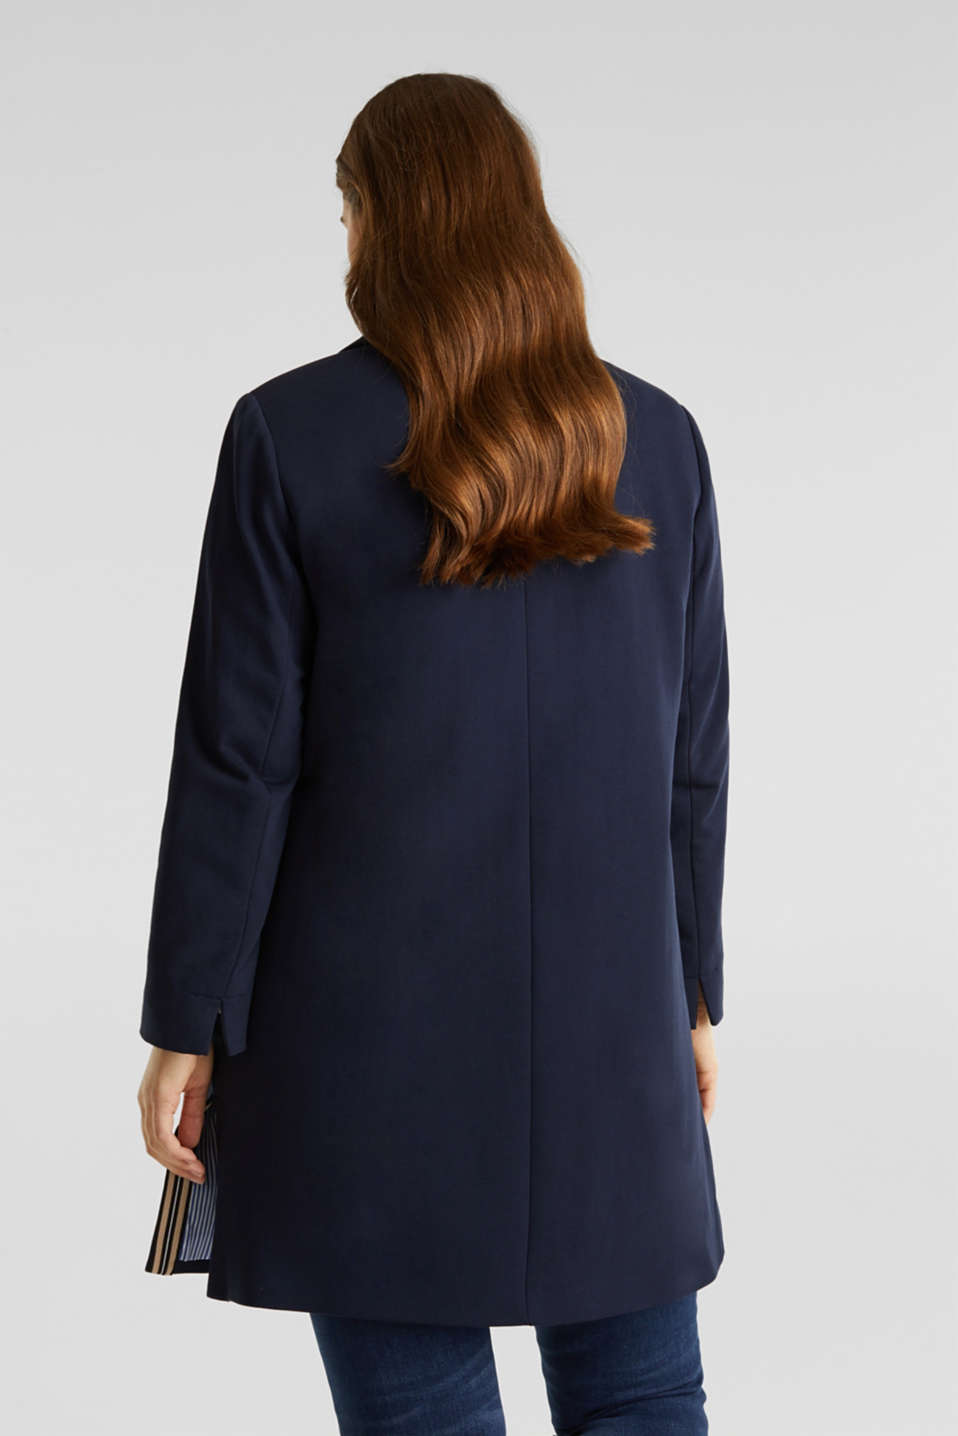 CURVY jersey coat with slits, NAVY, detail image number 3